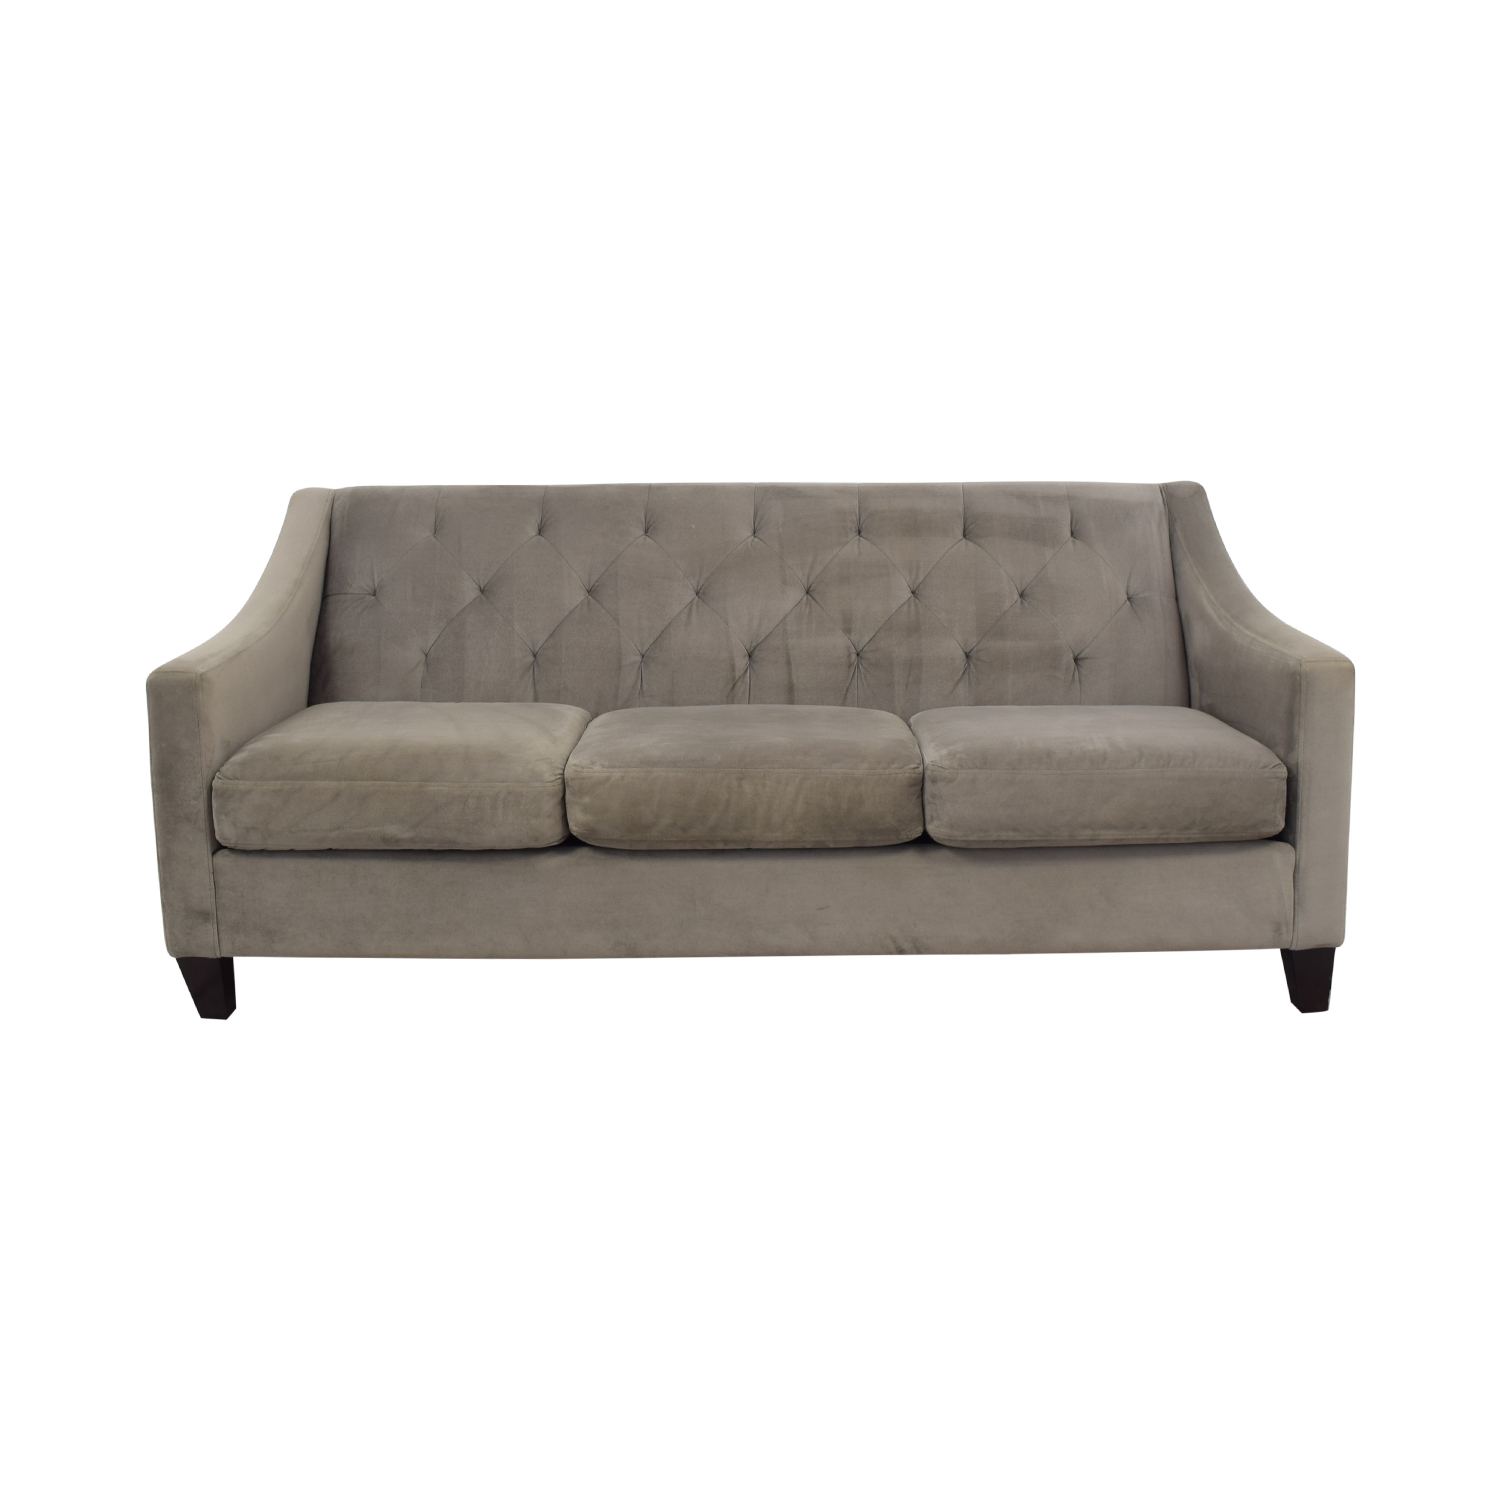 buy Max Home Modern Sofa Max Home